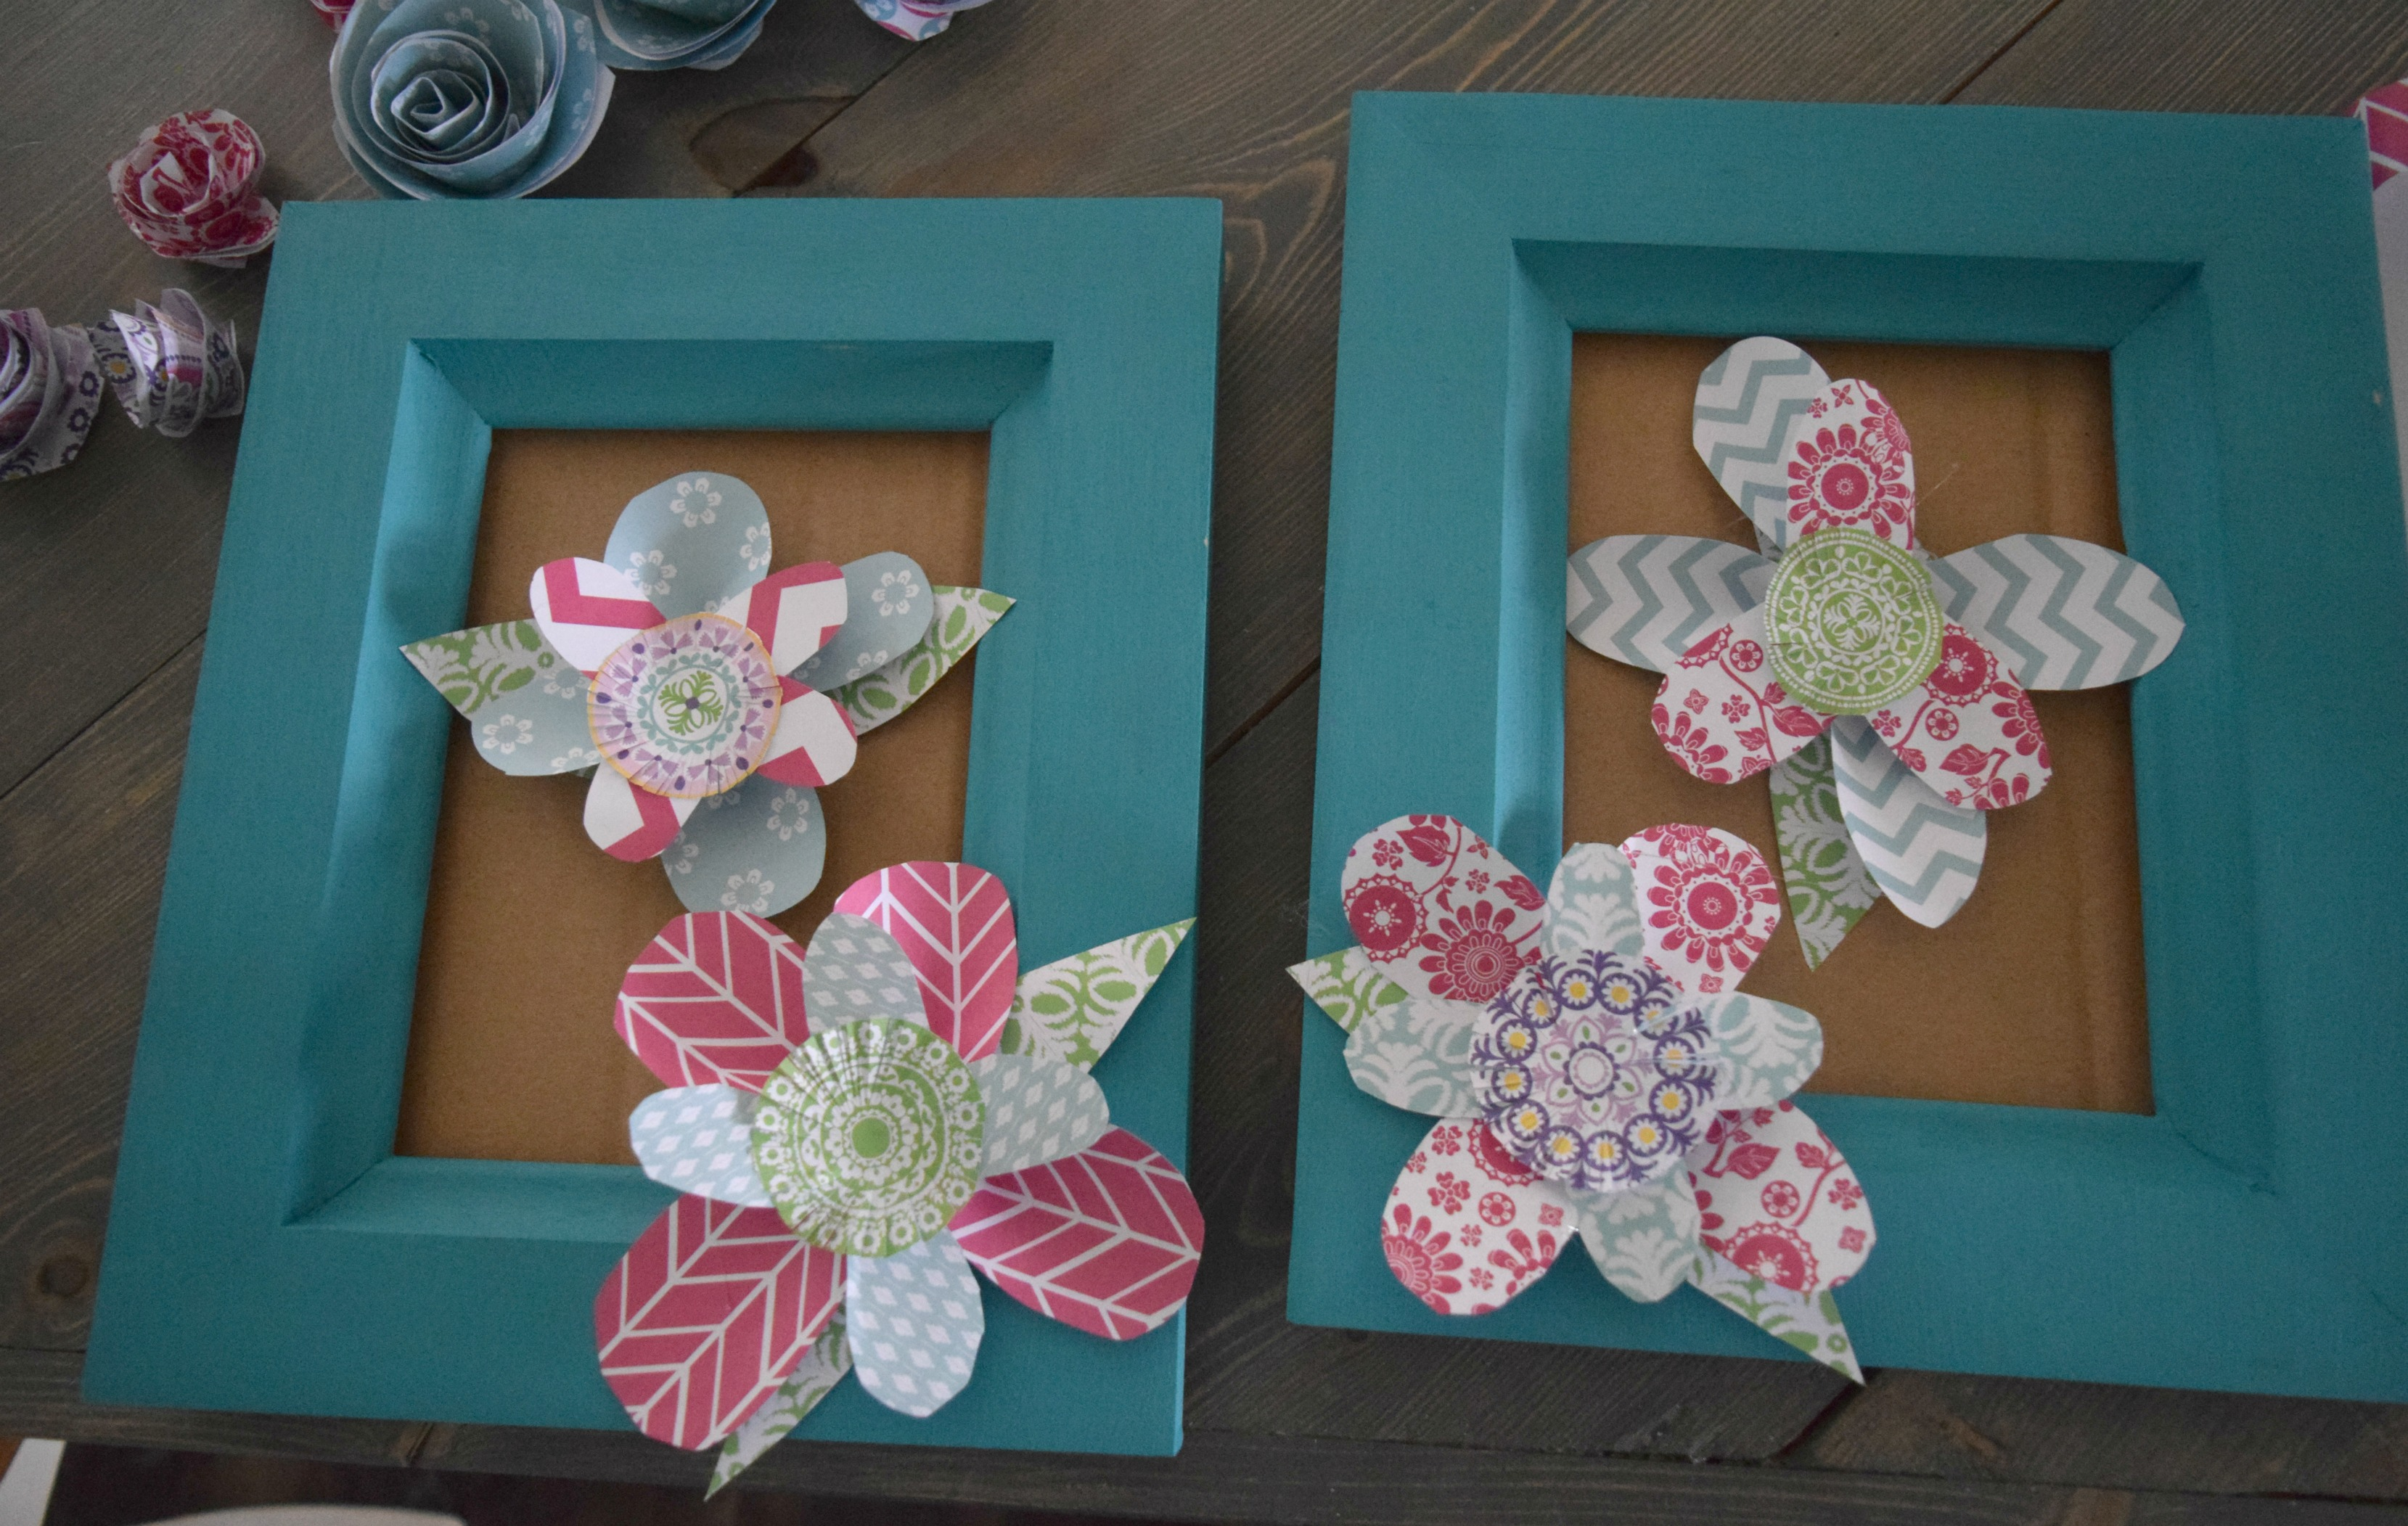 How To Make Wall Art Using Paper Flowers Our House Now A Home